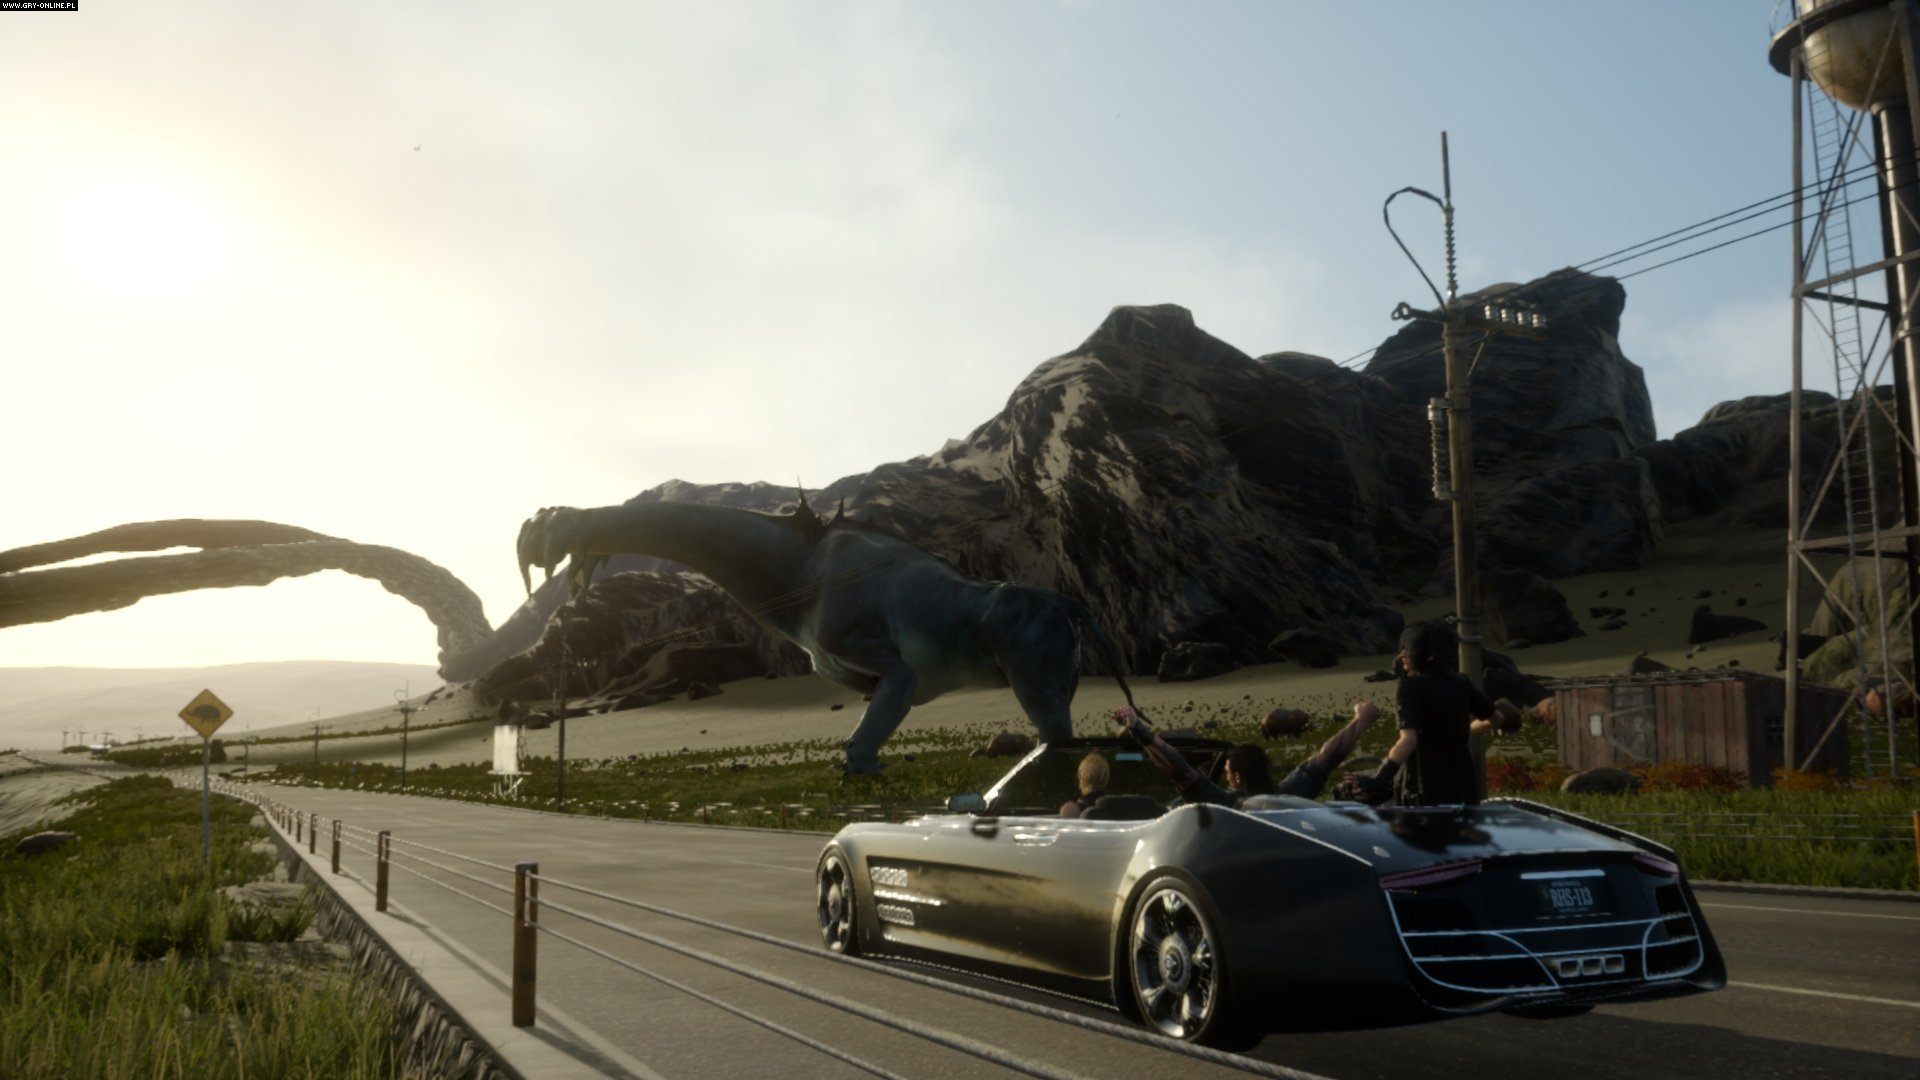 Final Fantasy XV PS4, XONE Gry Screen 156/393, Square-Enix / Eidos